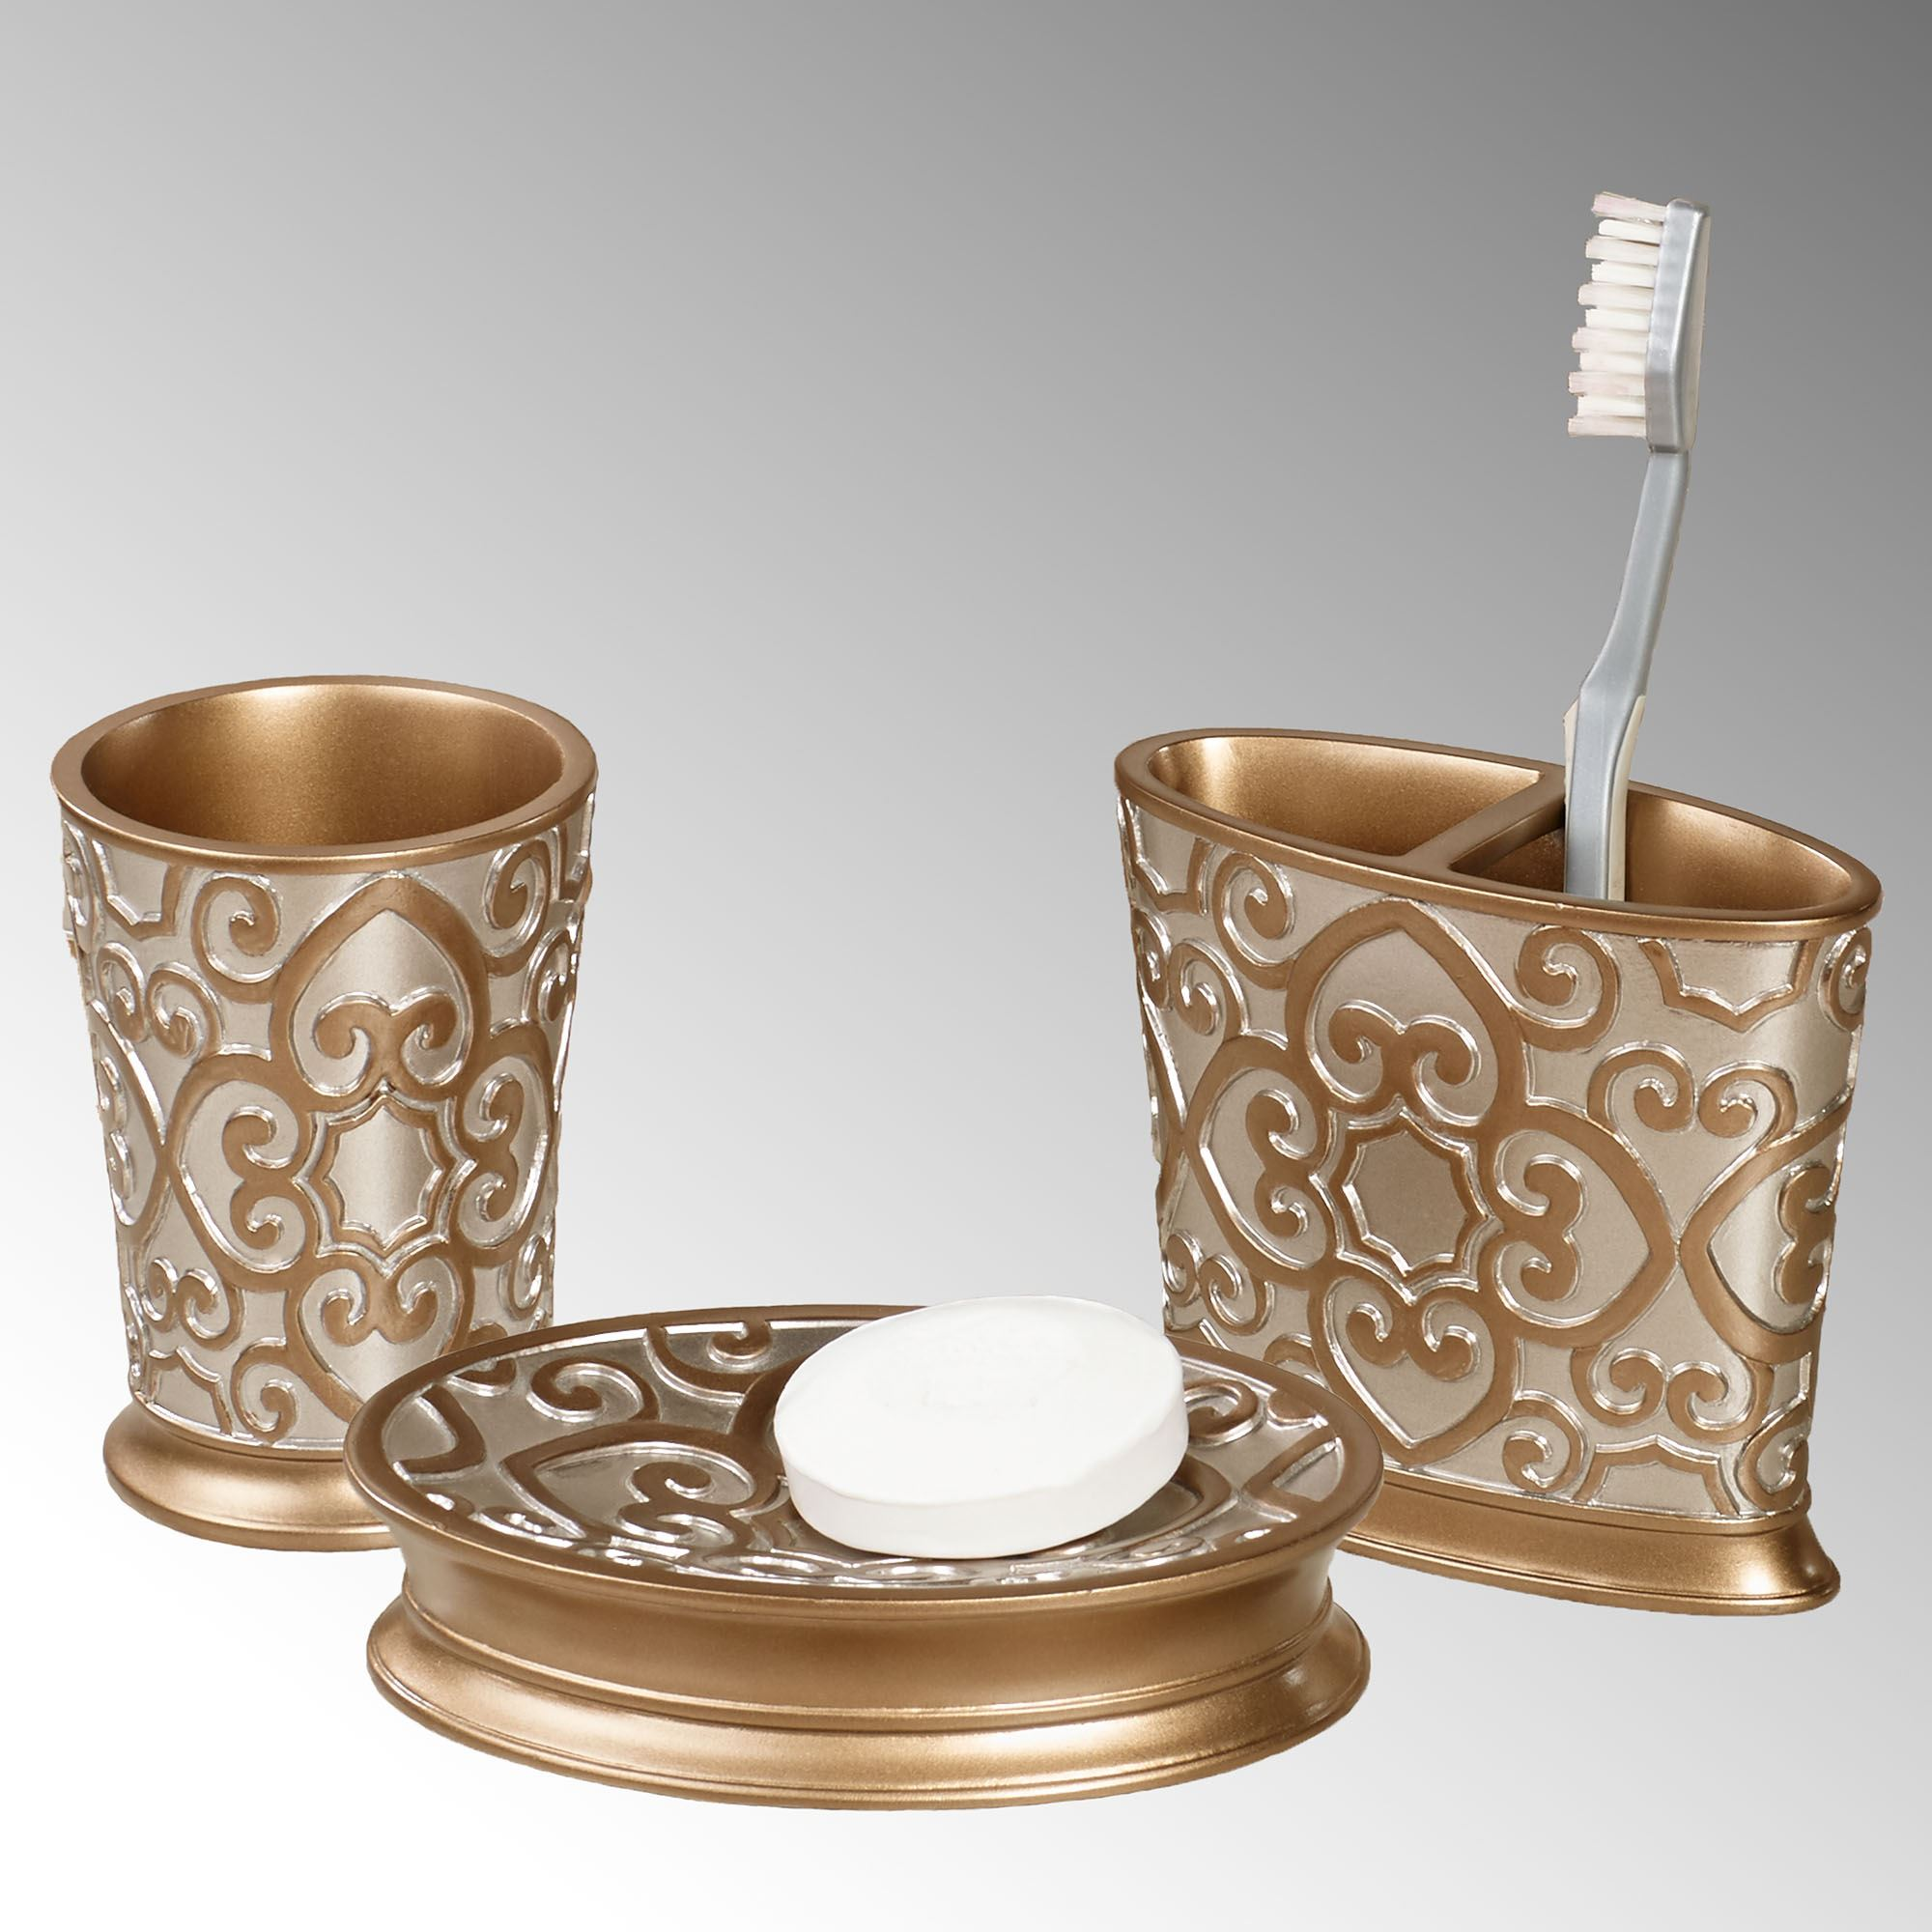 Fancy Toilet Allure Silver And Gold Bath Accessories